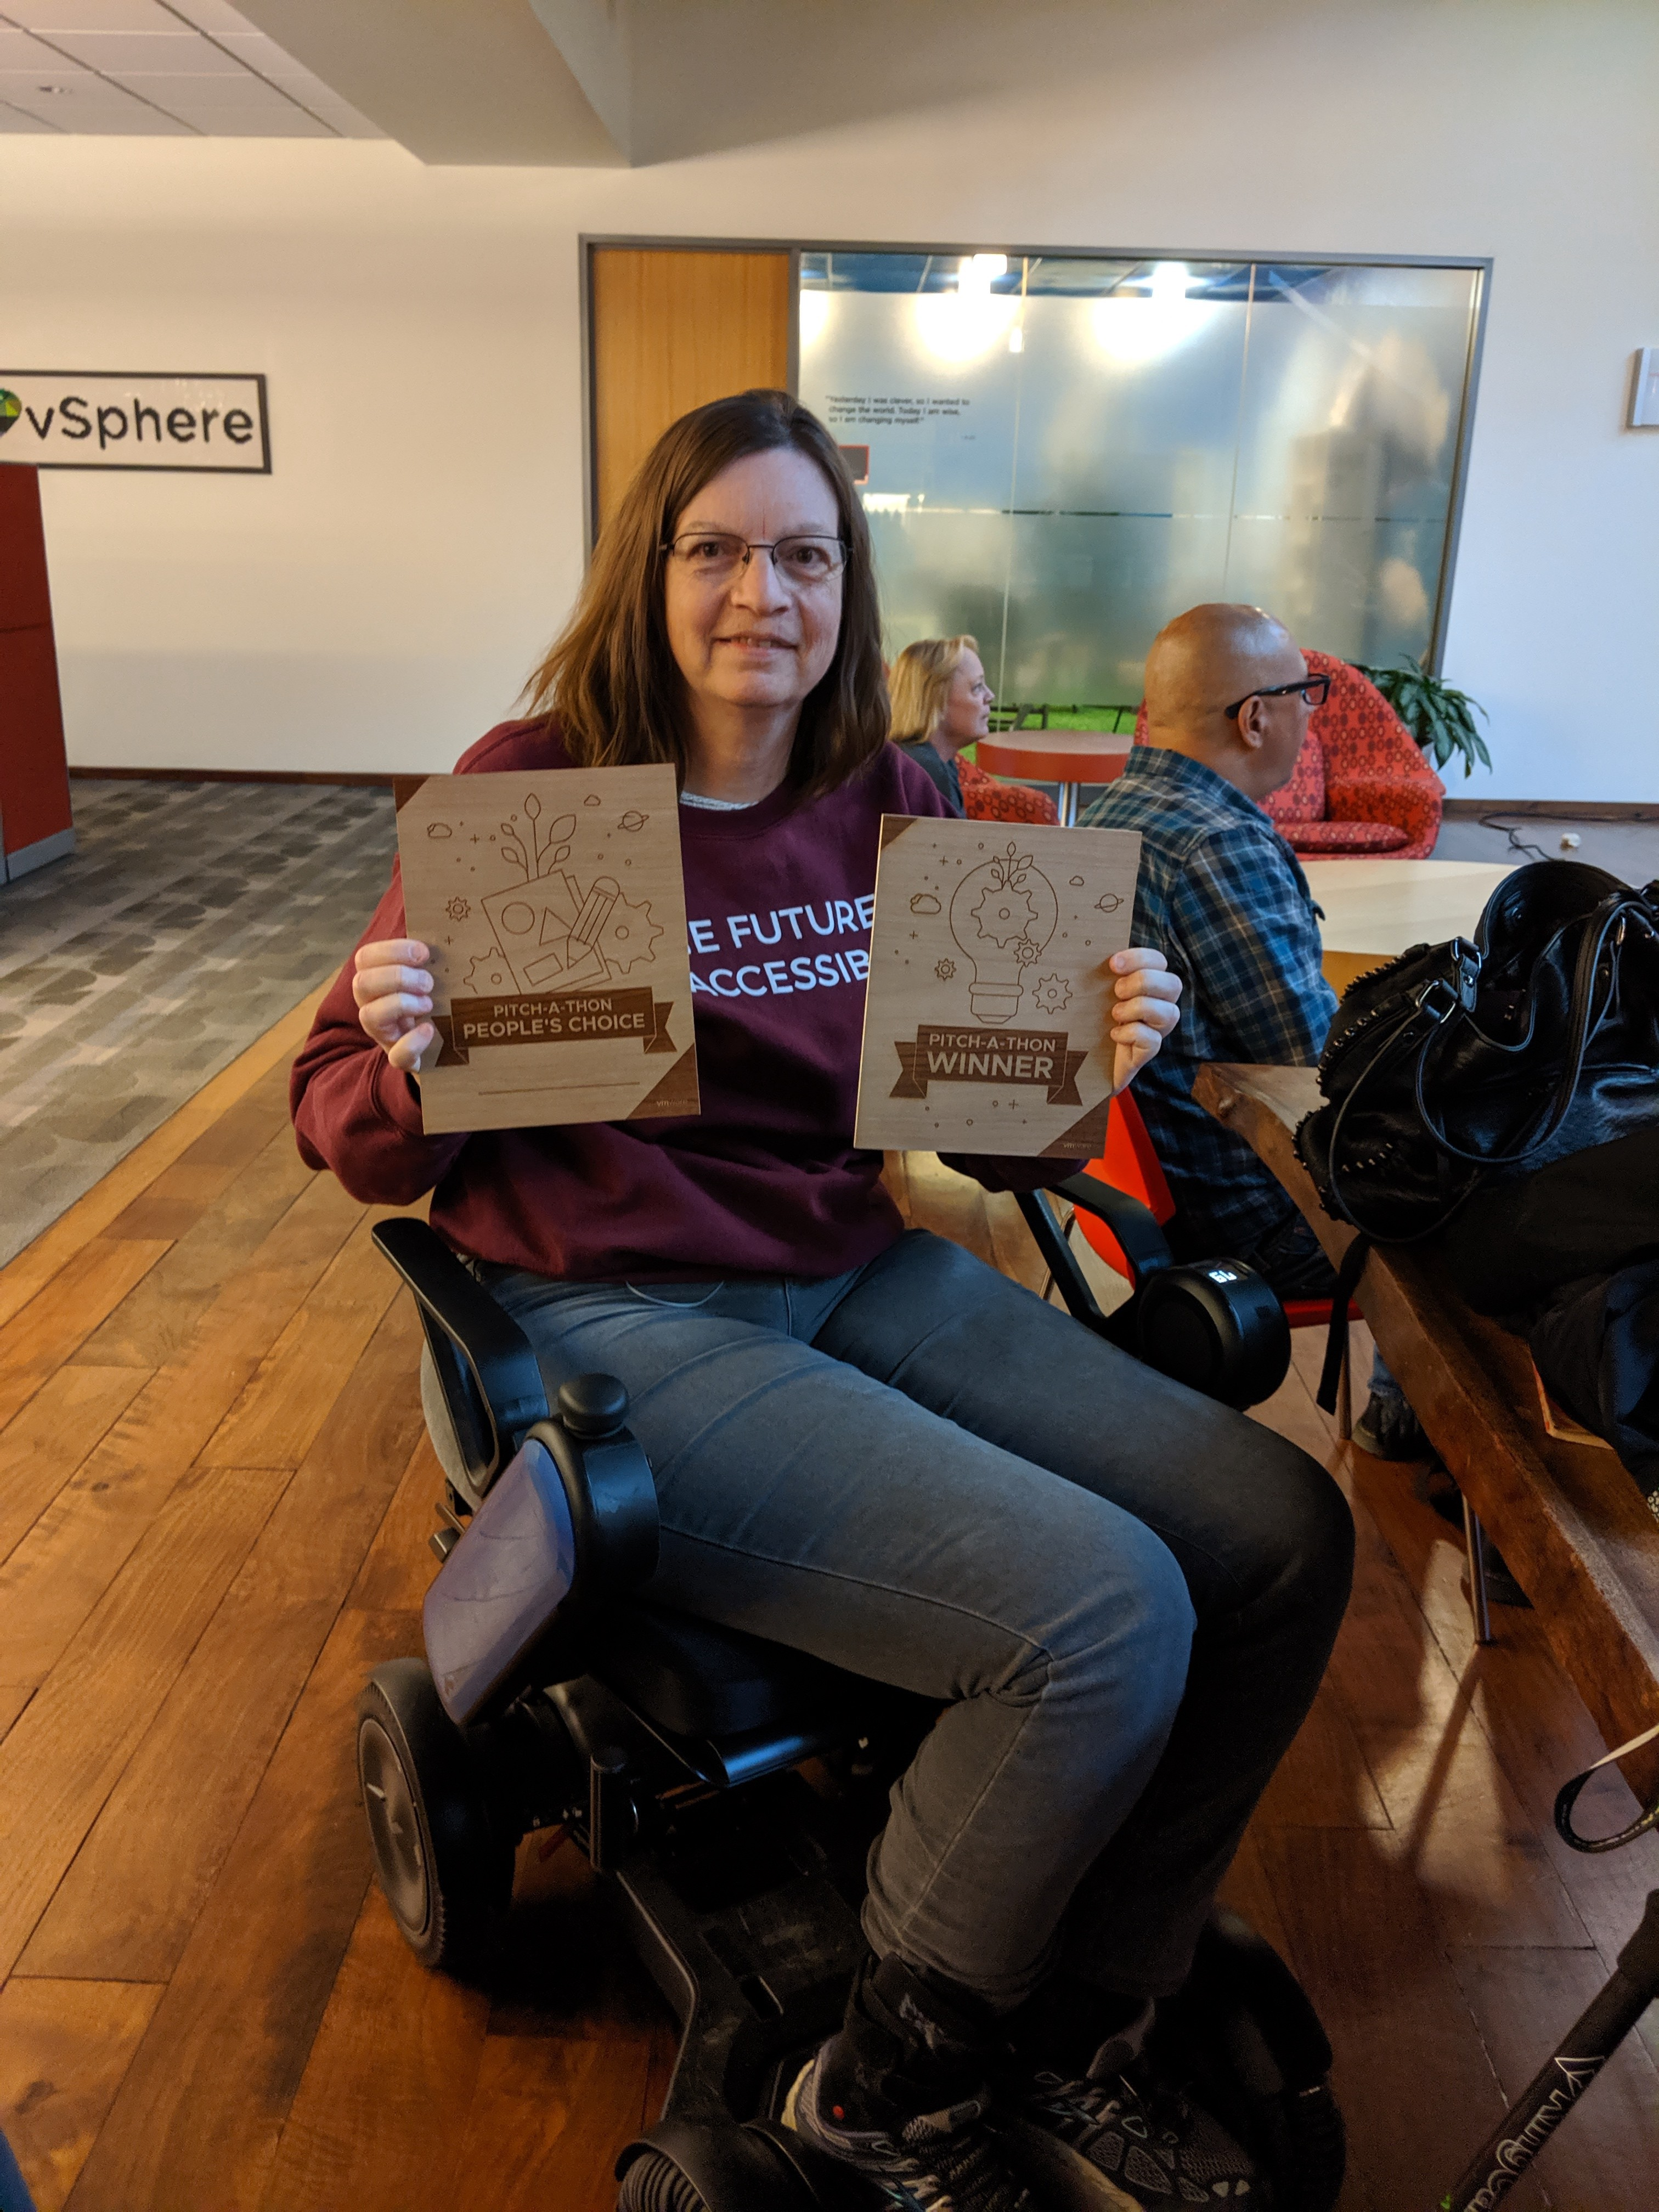 Sheri, our Head of Accessibility, holding up two plaques she won for having the best pitch at a VMware Pitch-a-thon.